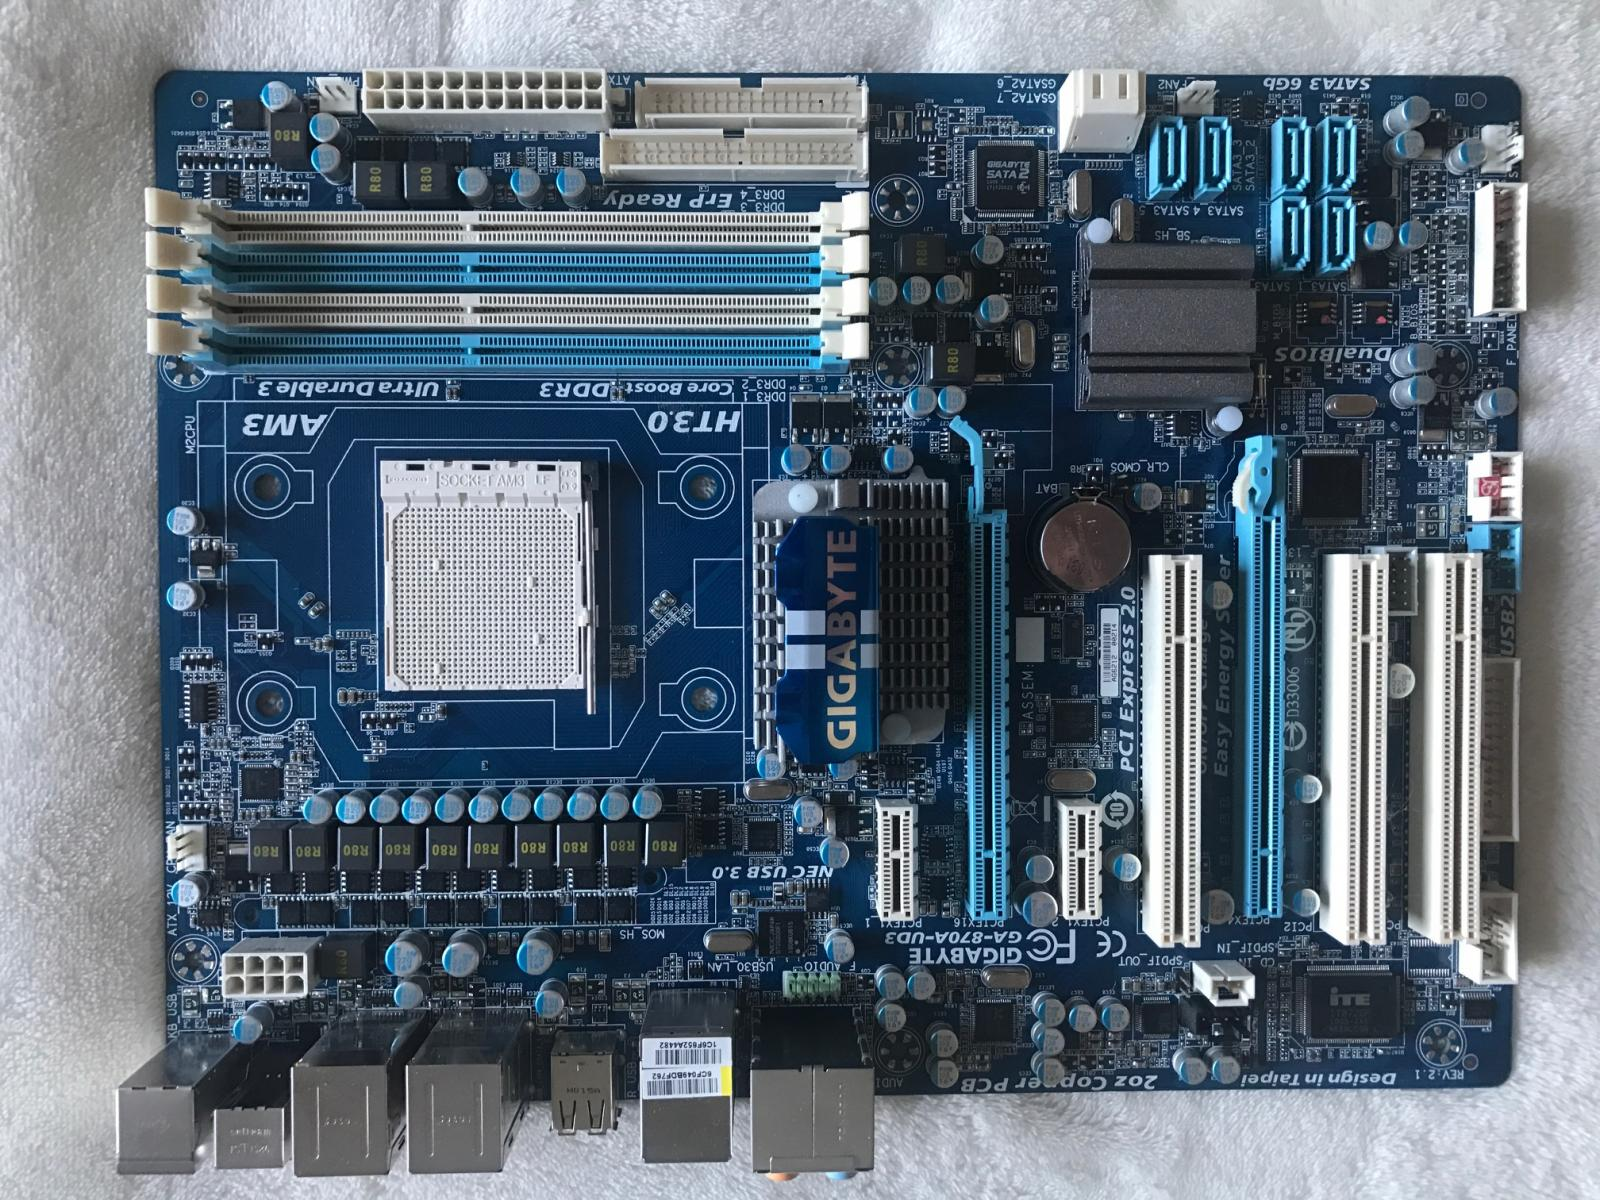 Photo of GIGABYTE GA-870A-UD3 AM3 AMD 870 SATA 6Gb/s USB 3.0 ATX AMD Motherboard